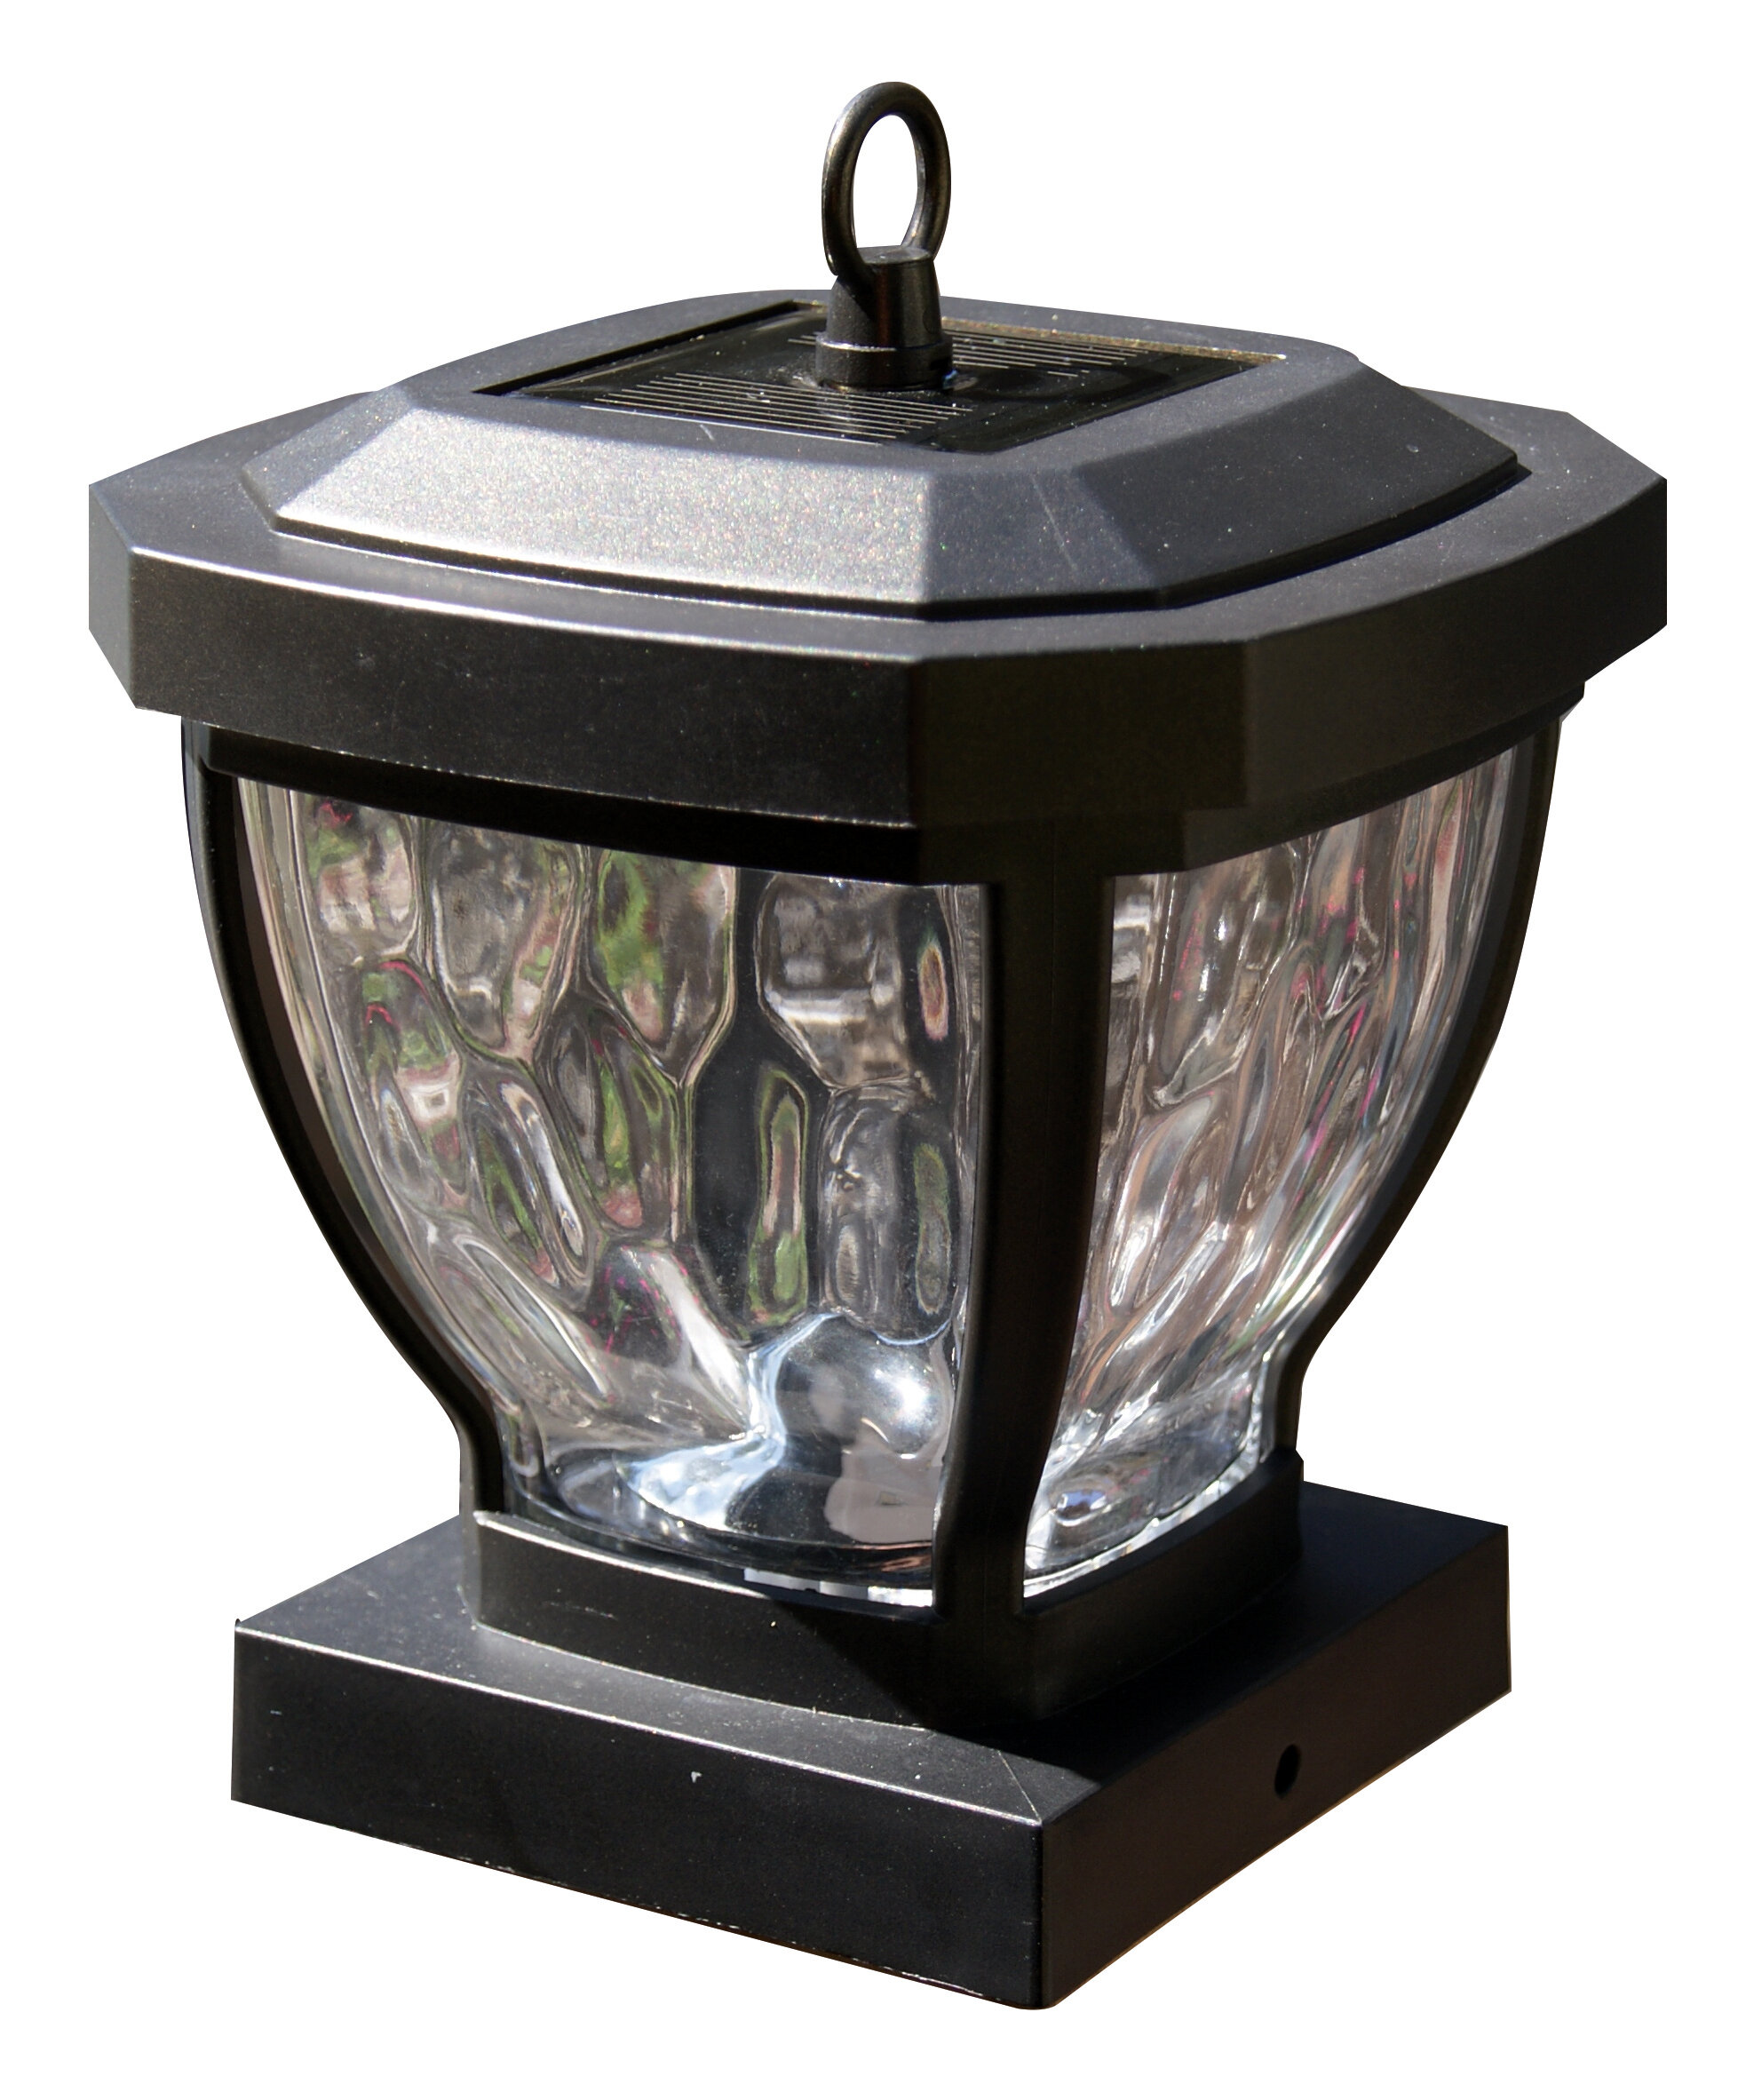 Cly Caps 1-Light Fence Post Cap & Reviews | Wayfair Fence Lighting Ideas String Html on interior string lighting ideas, patio string lighting ideas, pergola string lighting ideas, backyard string lighting ideas, garden string lighting ideas, deck string lighting ideas, porch string lighting ideas,